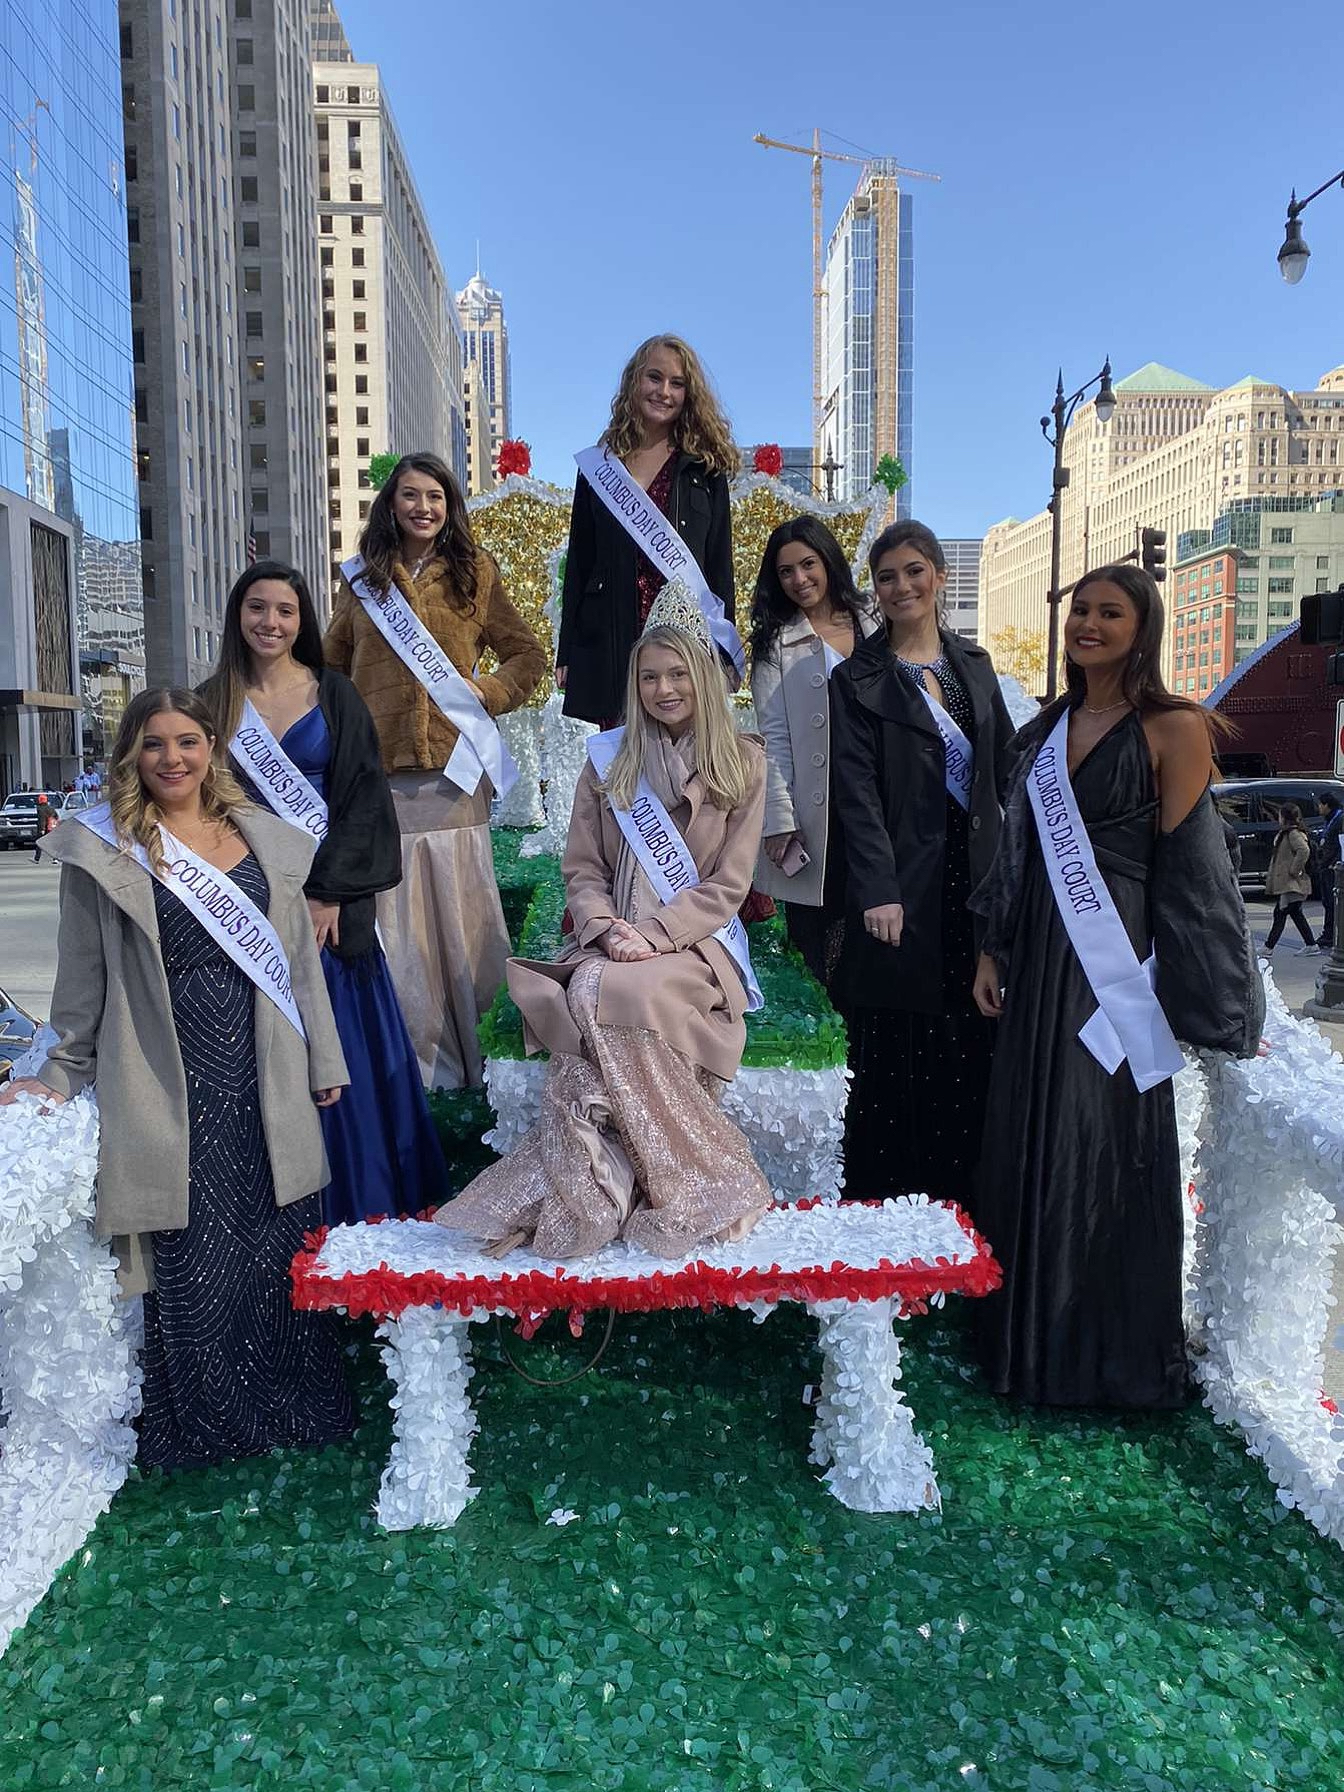 Queen of the Court; Elmhurst's Natalie DiCianni named Chicago's Columbus Day Queen